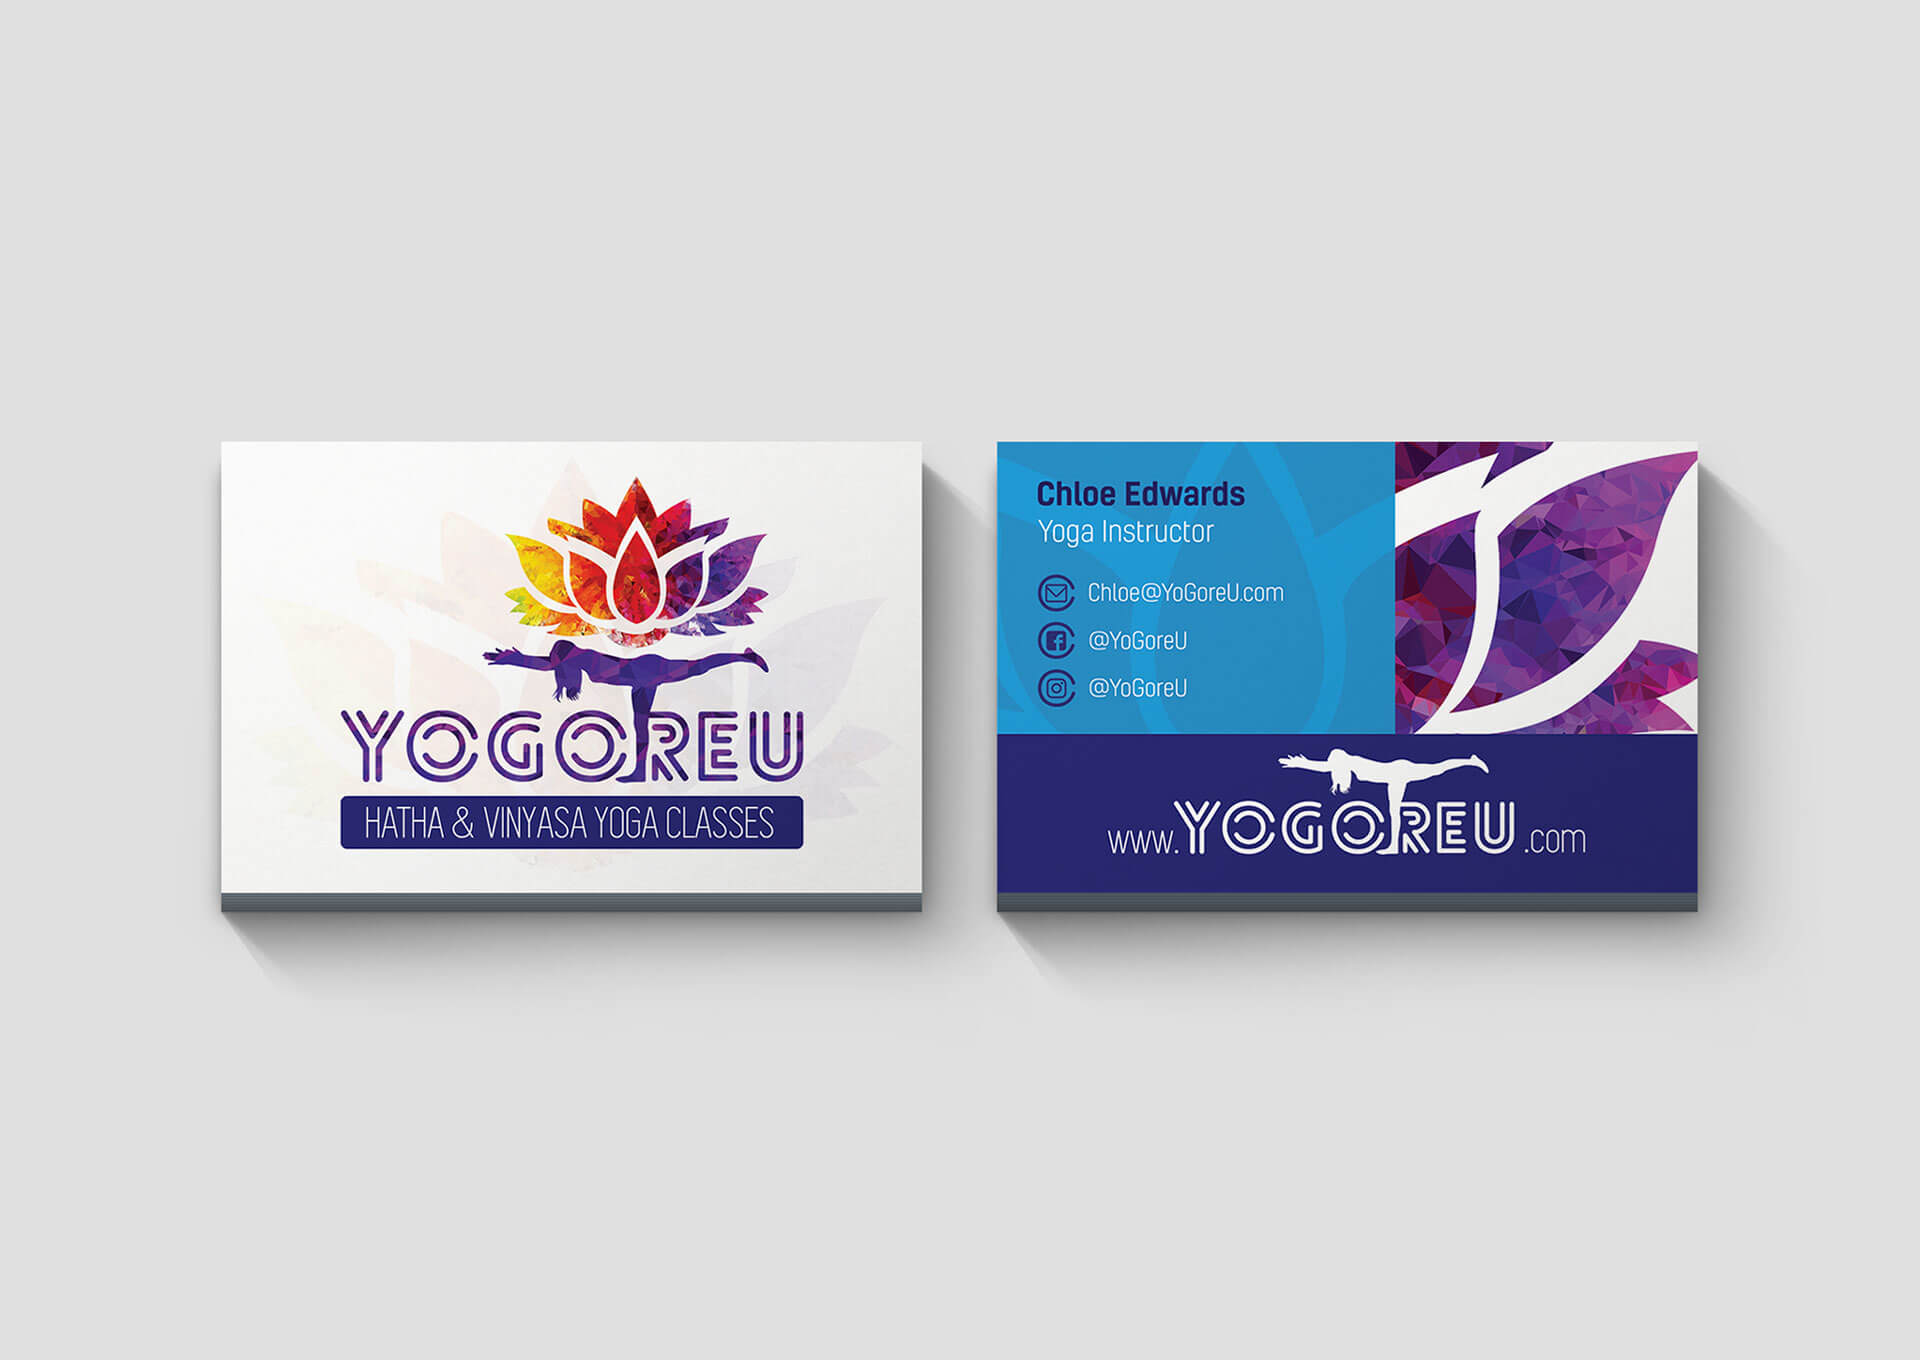 Yogoreu Business Cards